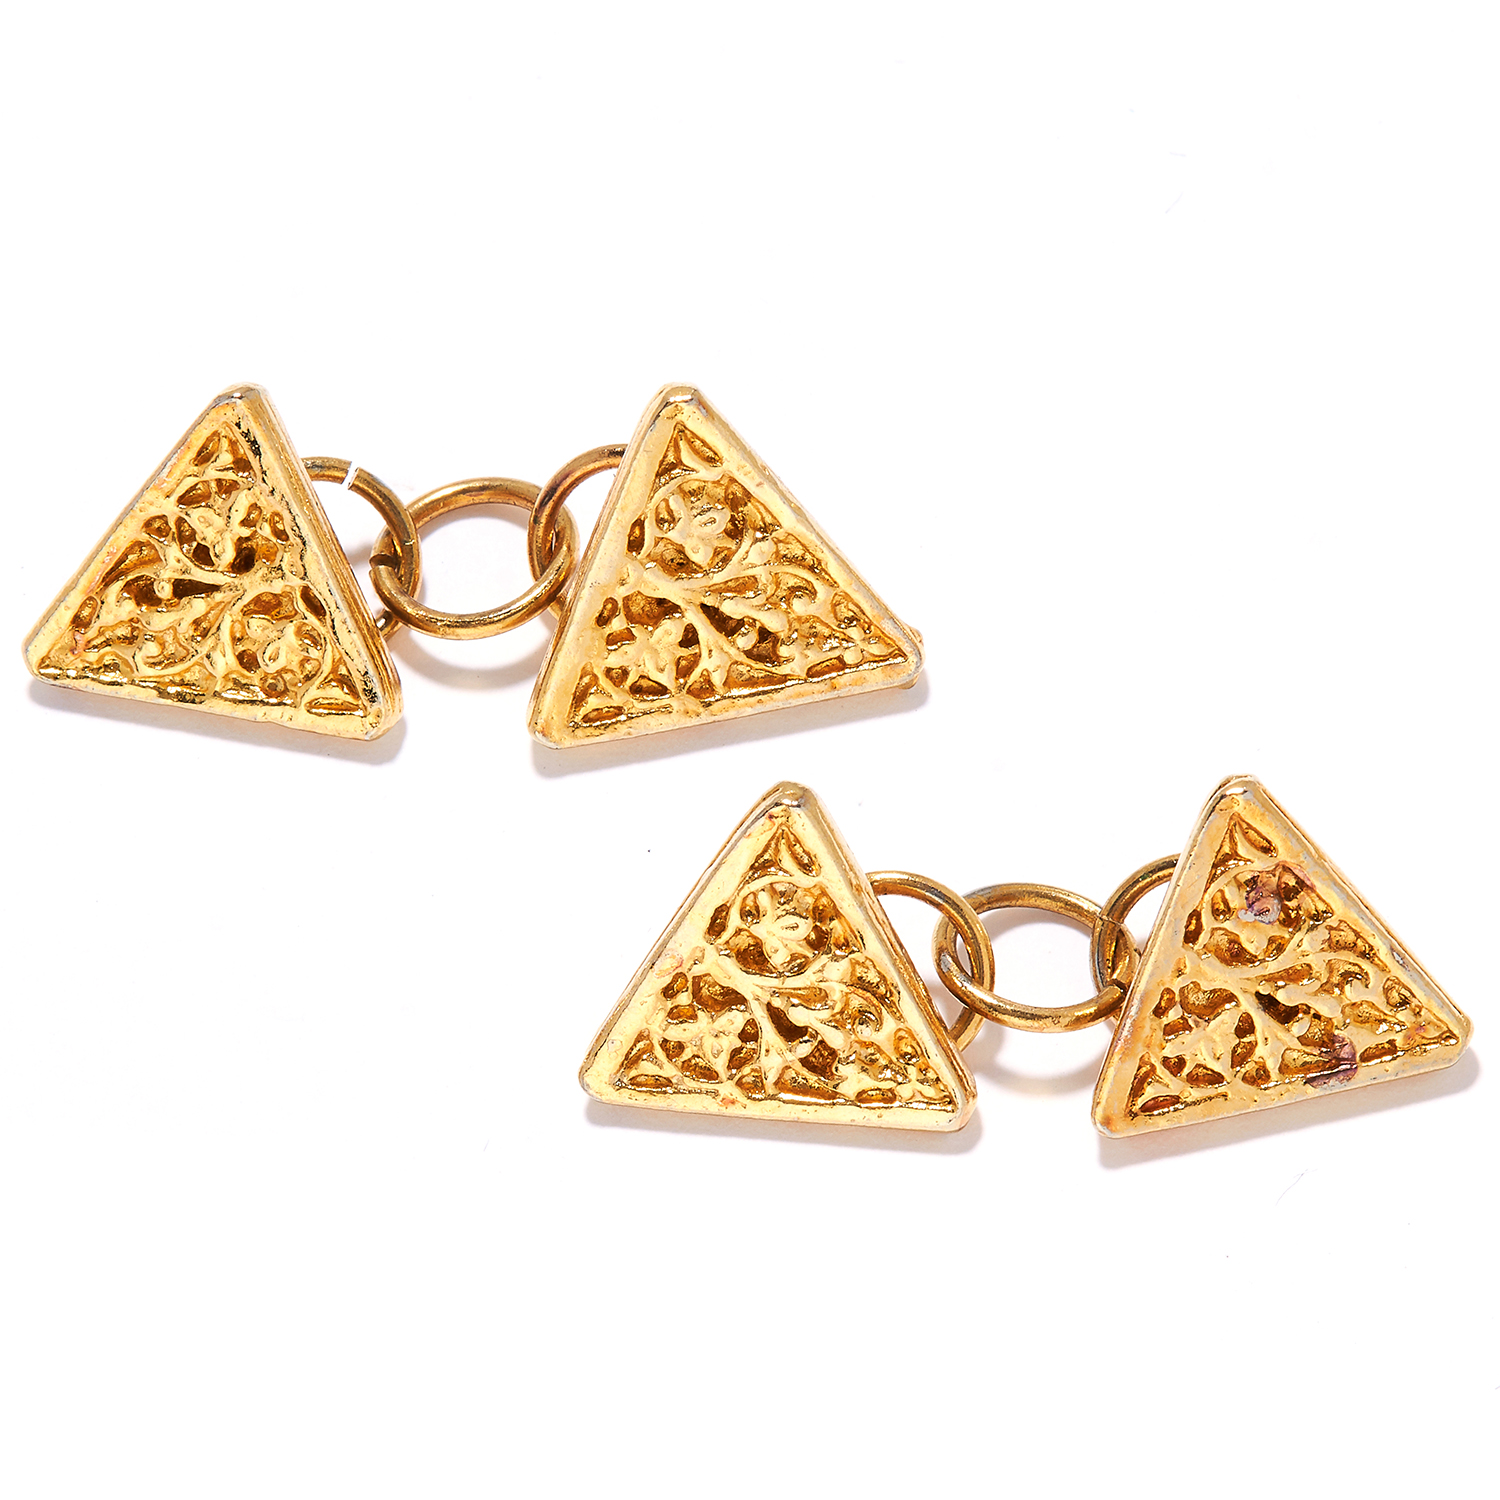 A PAIR OF GOLD CUFFLINKS in abstract triangular form, unmarked, 7.60g.